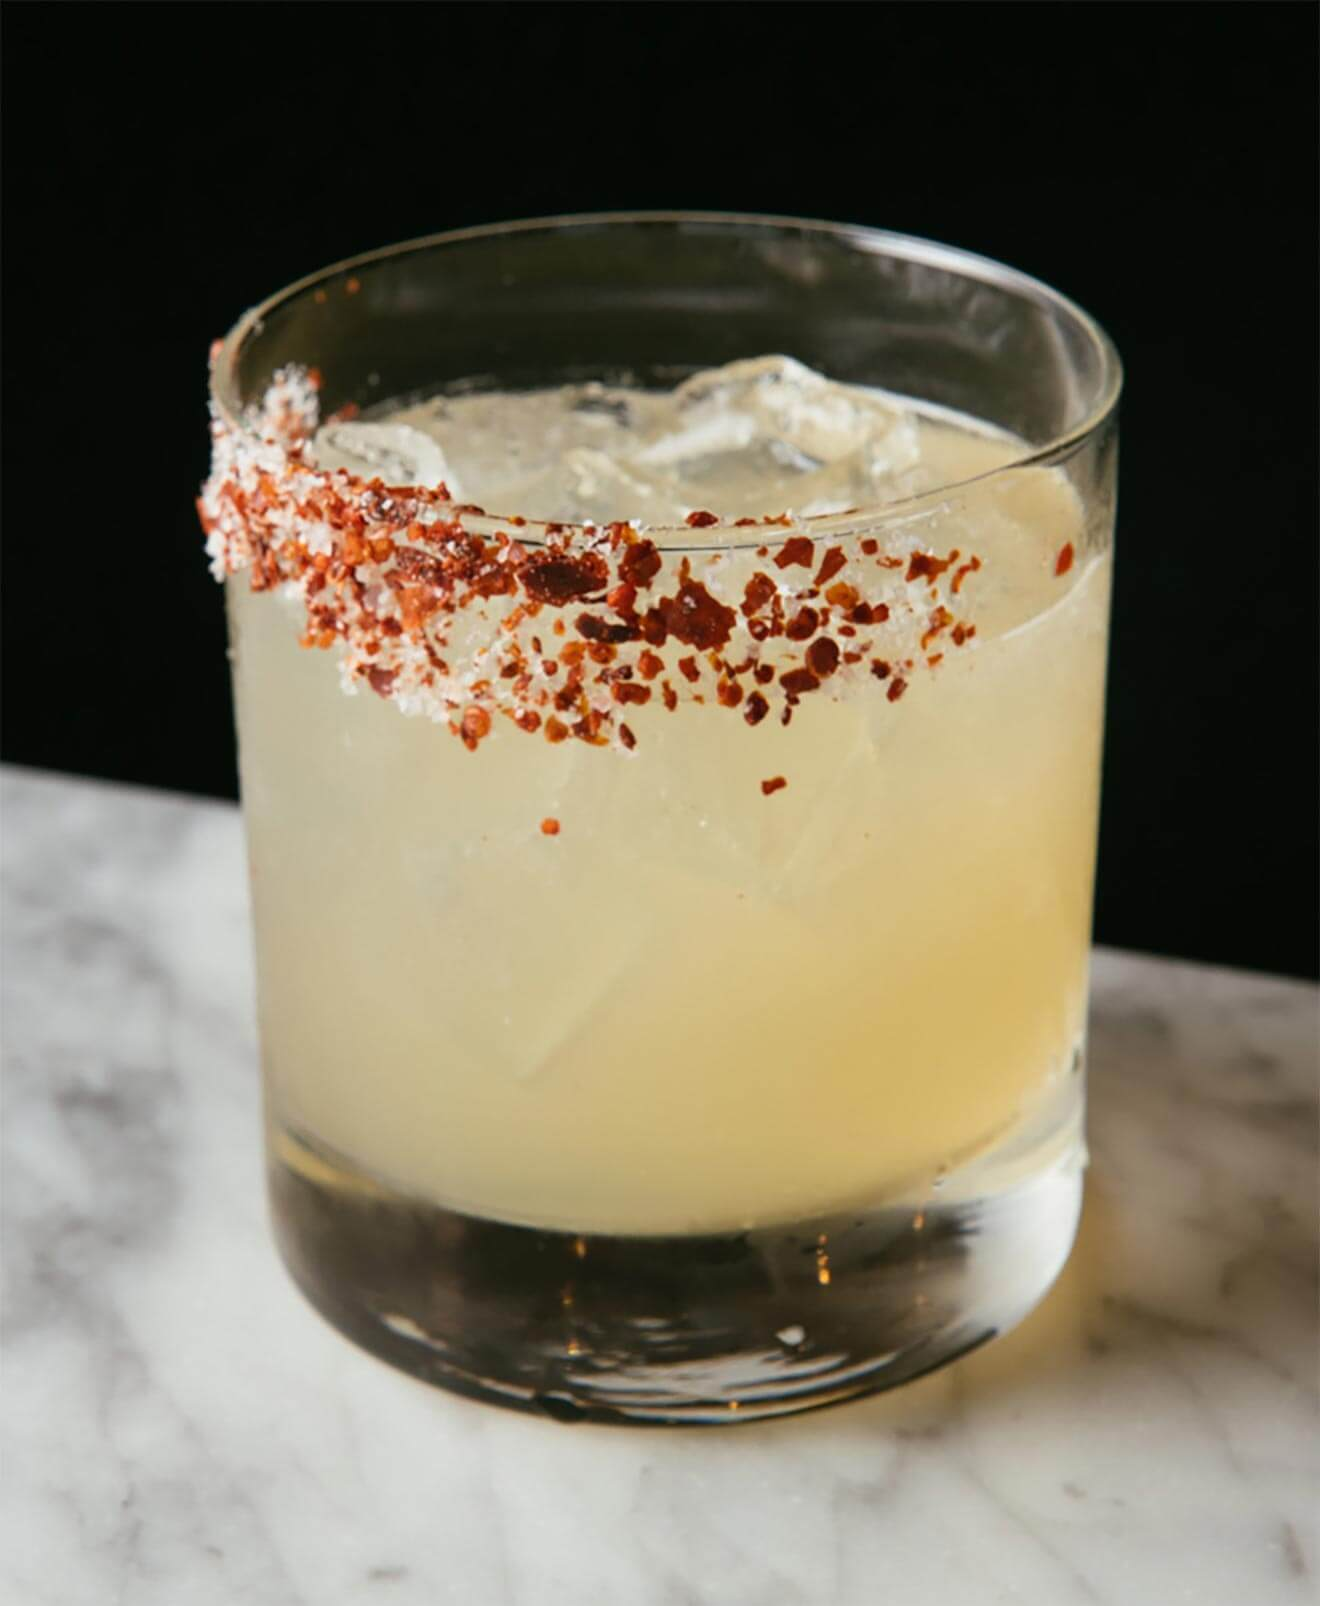 Dionysus Revival cocktail with salt garnish, marble table